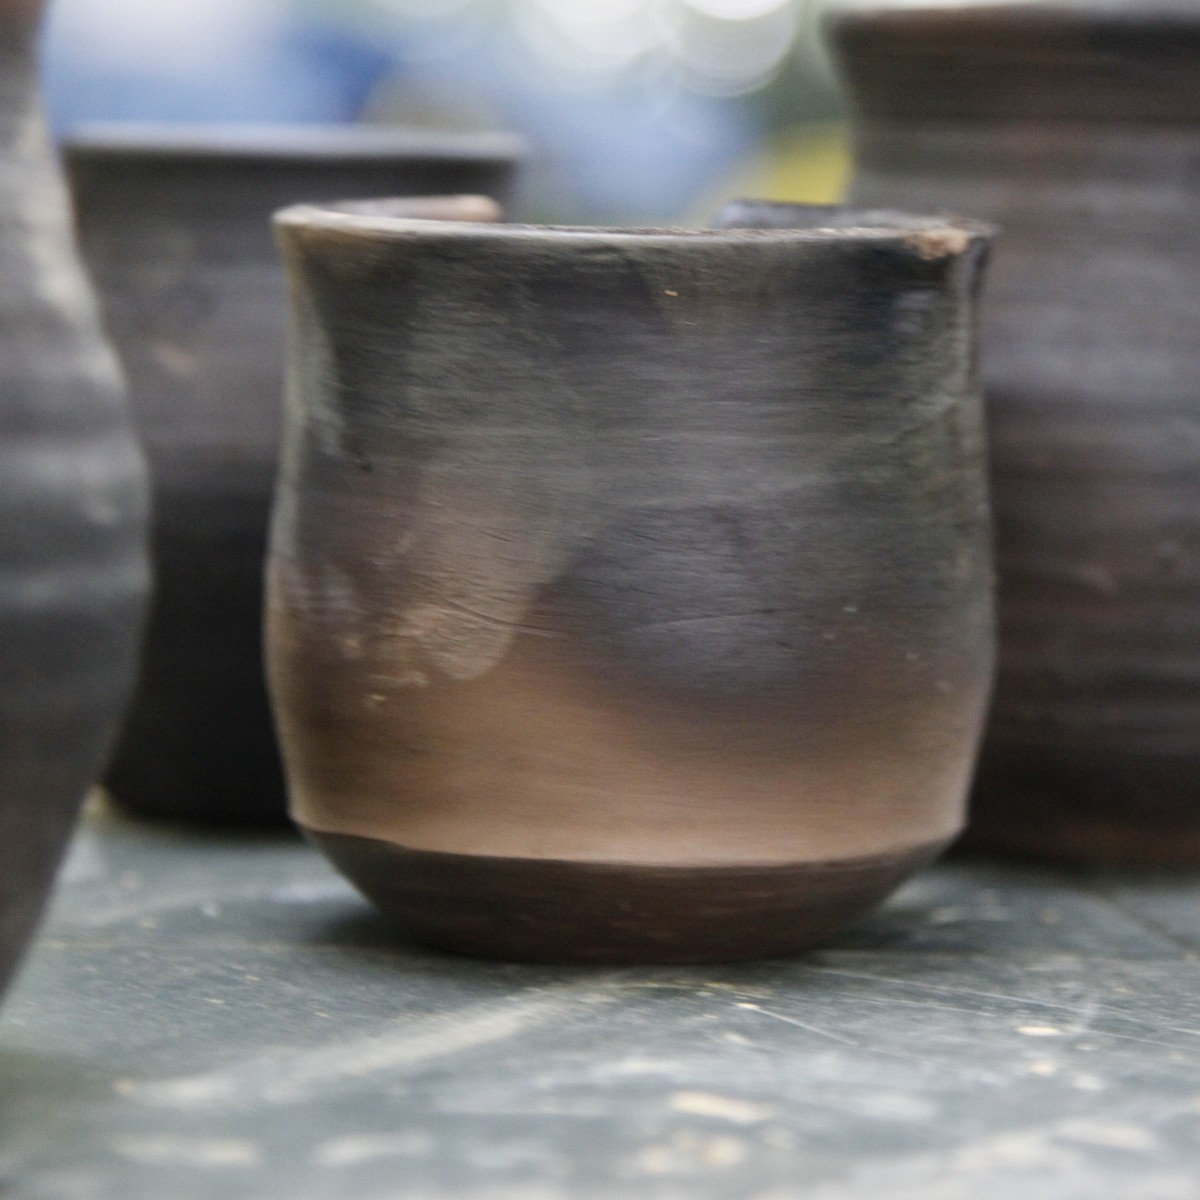 Photo of potteryware